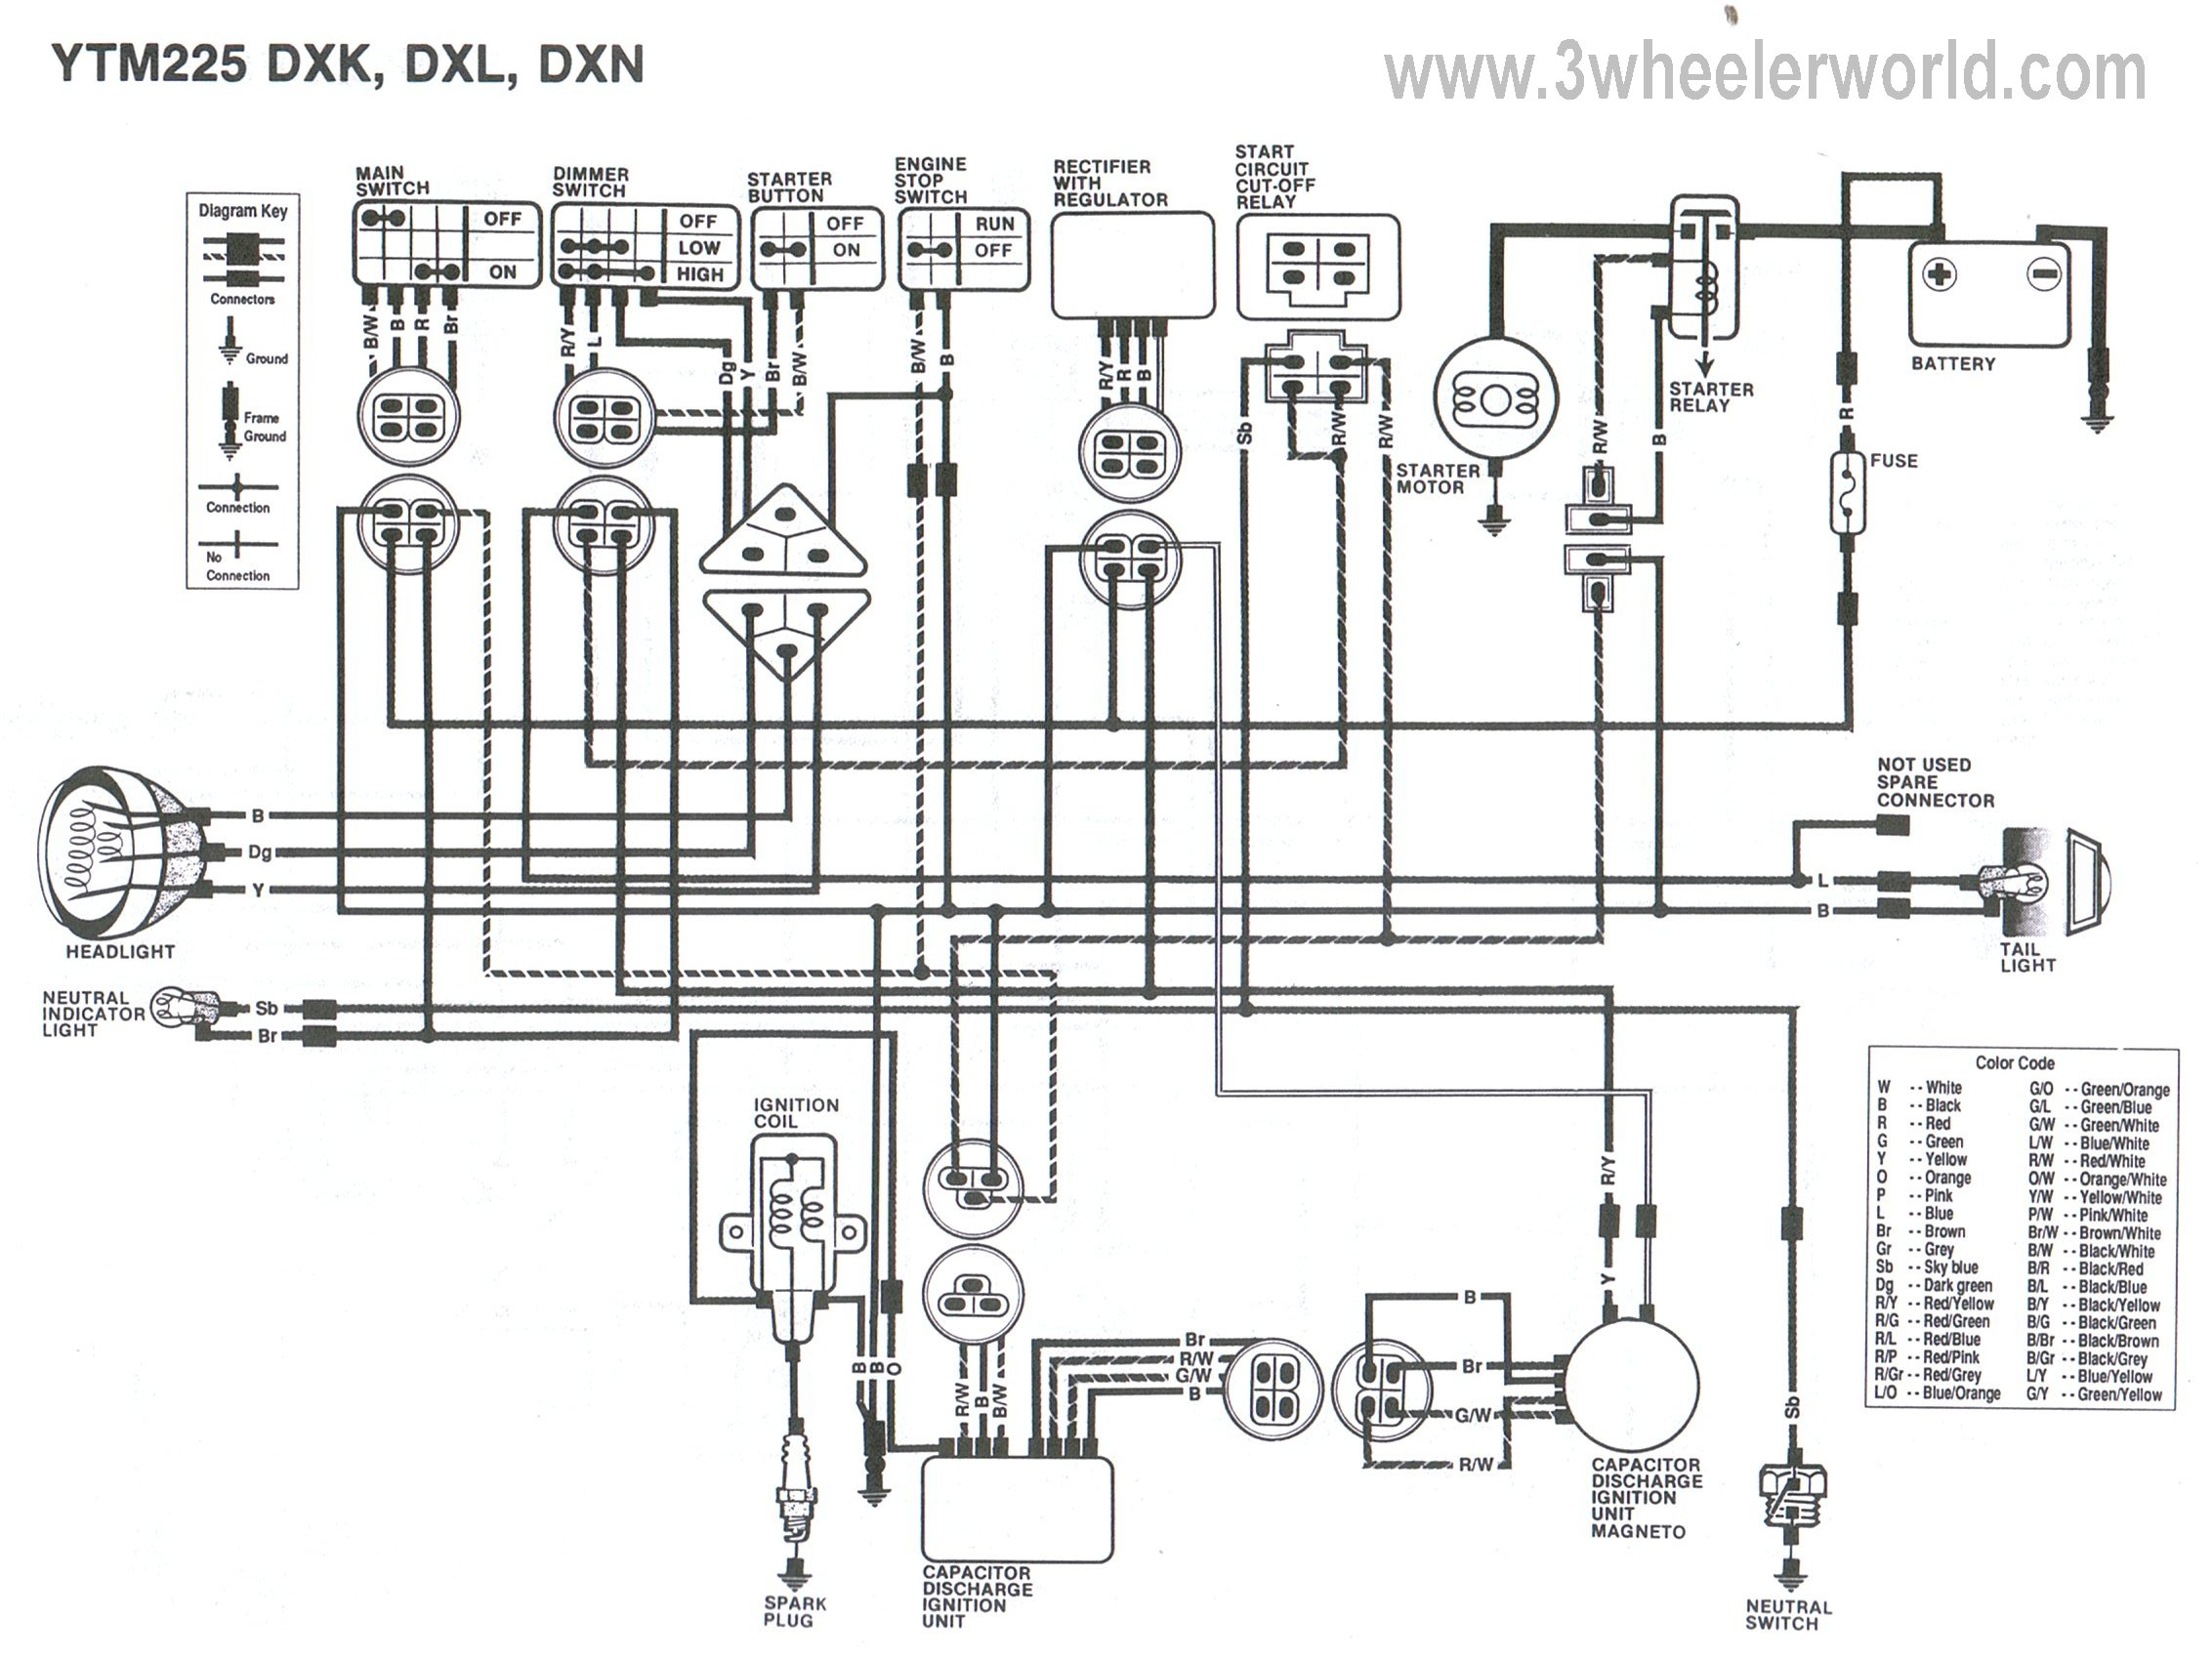 Yamaha Moto 4 200 Wiring Diagram 86 Yamaha Diagram 4